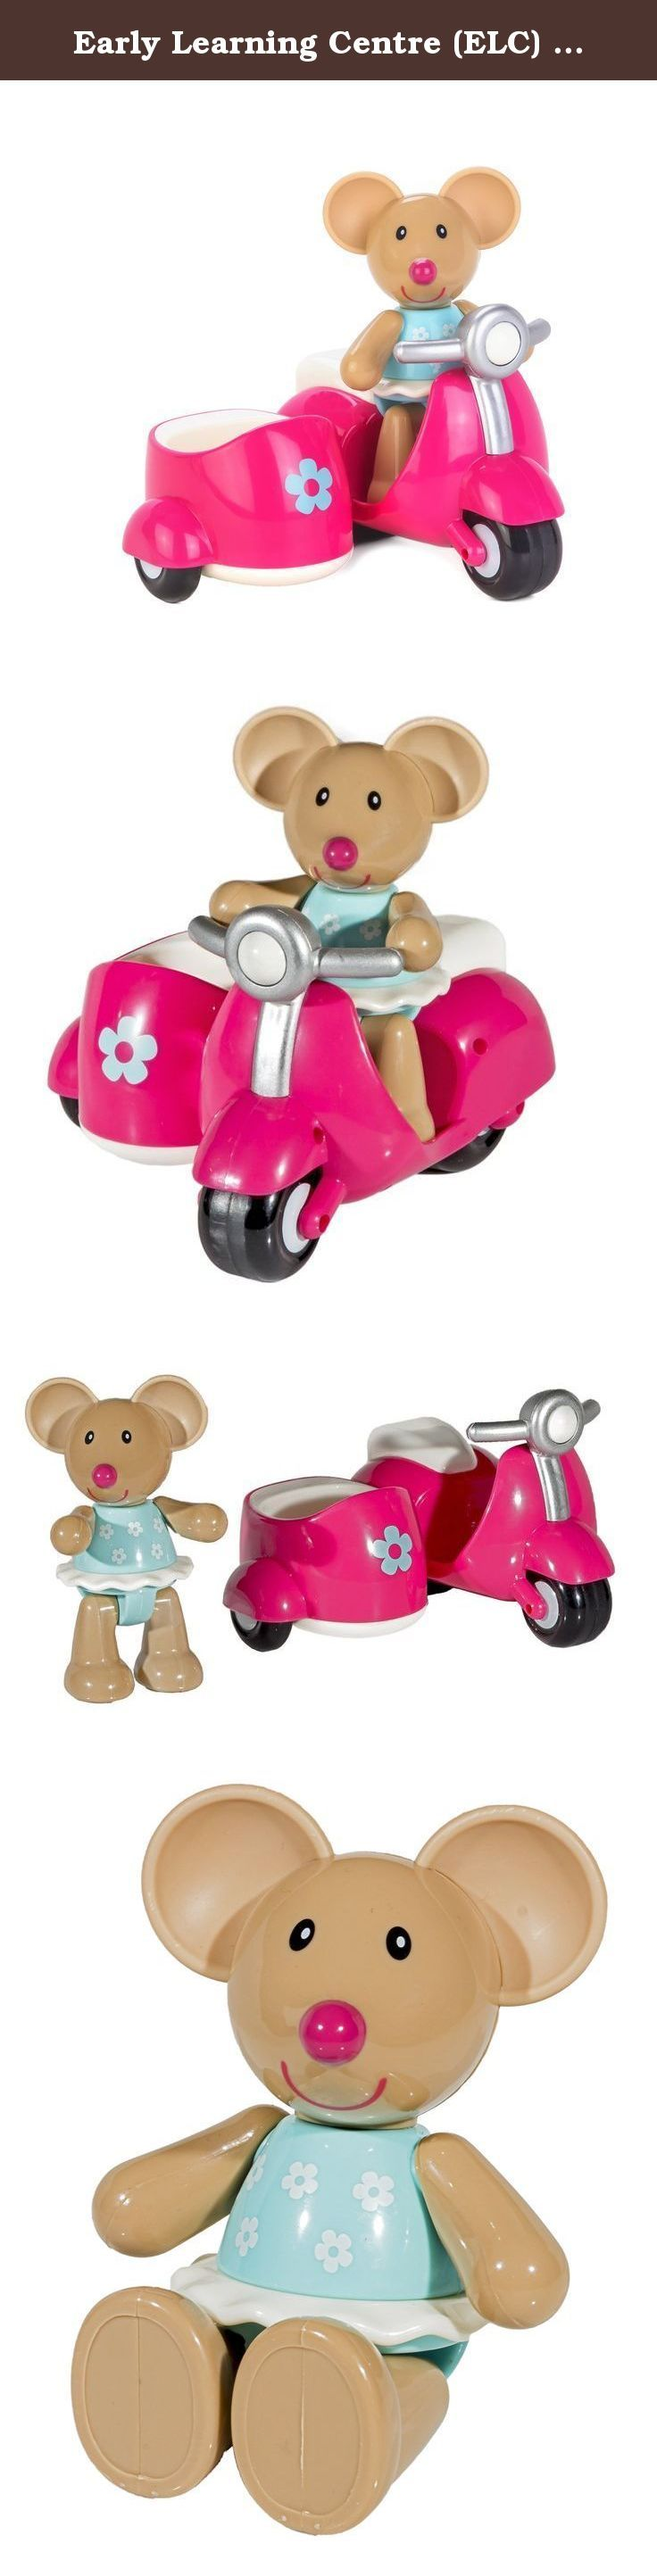 "Early Learning Centre (ELC) Toybox Martha Mouse and her Scooter Baby Toy. Featuring an eye-catching pink scooter, Toybox Martha Mouse and her Scooter make all of the other Toybox critters jealous! Designed specially for little hands to hold and play with, Martha is a chunky, plastic, brown mouse figure with a round, pink nose and a blue and white flowered dress. Turn her head, arms and legs to hear a fun ""click"" sound as you position her to either stand, or sit in her pink scooter, with a..."